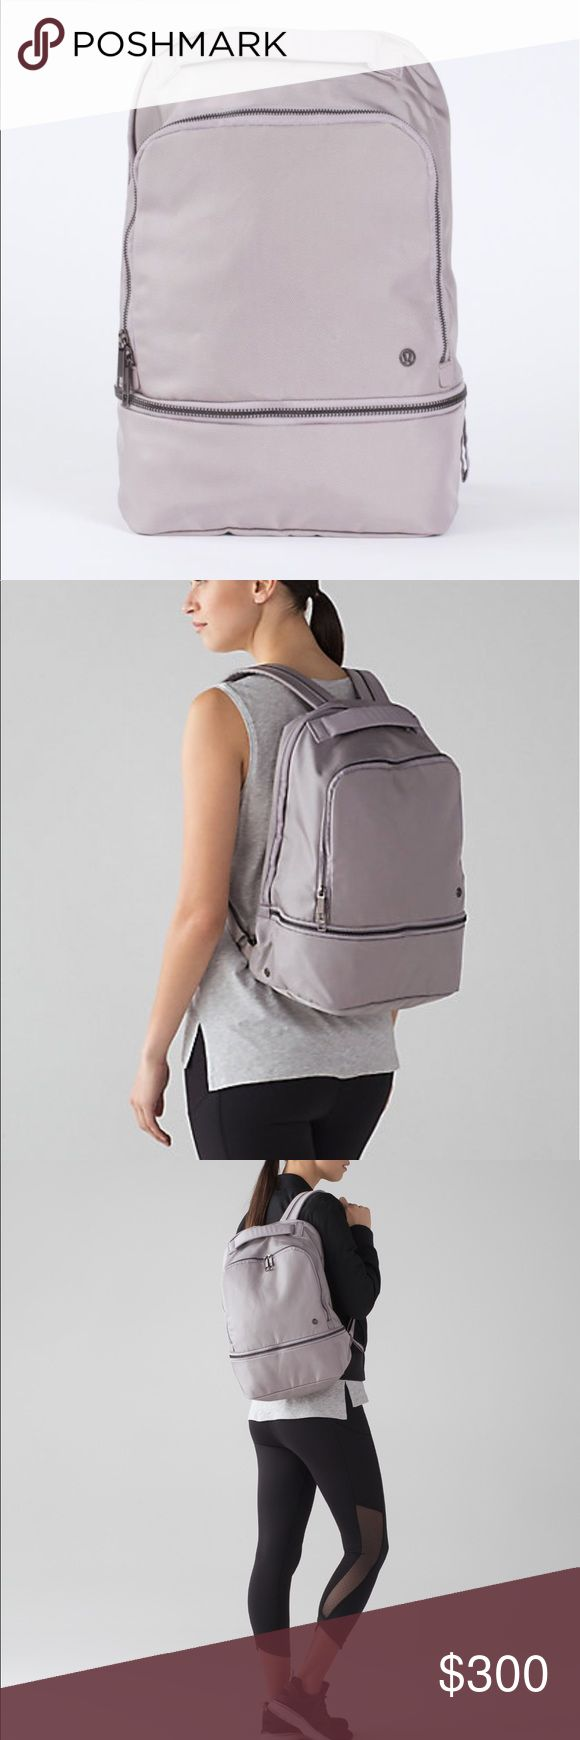 Lululemon Go Lightly Backpack Brand New with tags lululemon Go Lightly backpack in color: dark chrome. This item is rare and sold out online and in store!! lululemon athletica Bags Backpacks